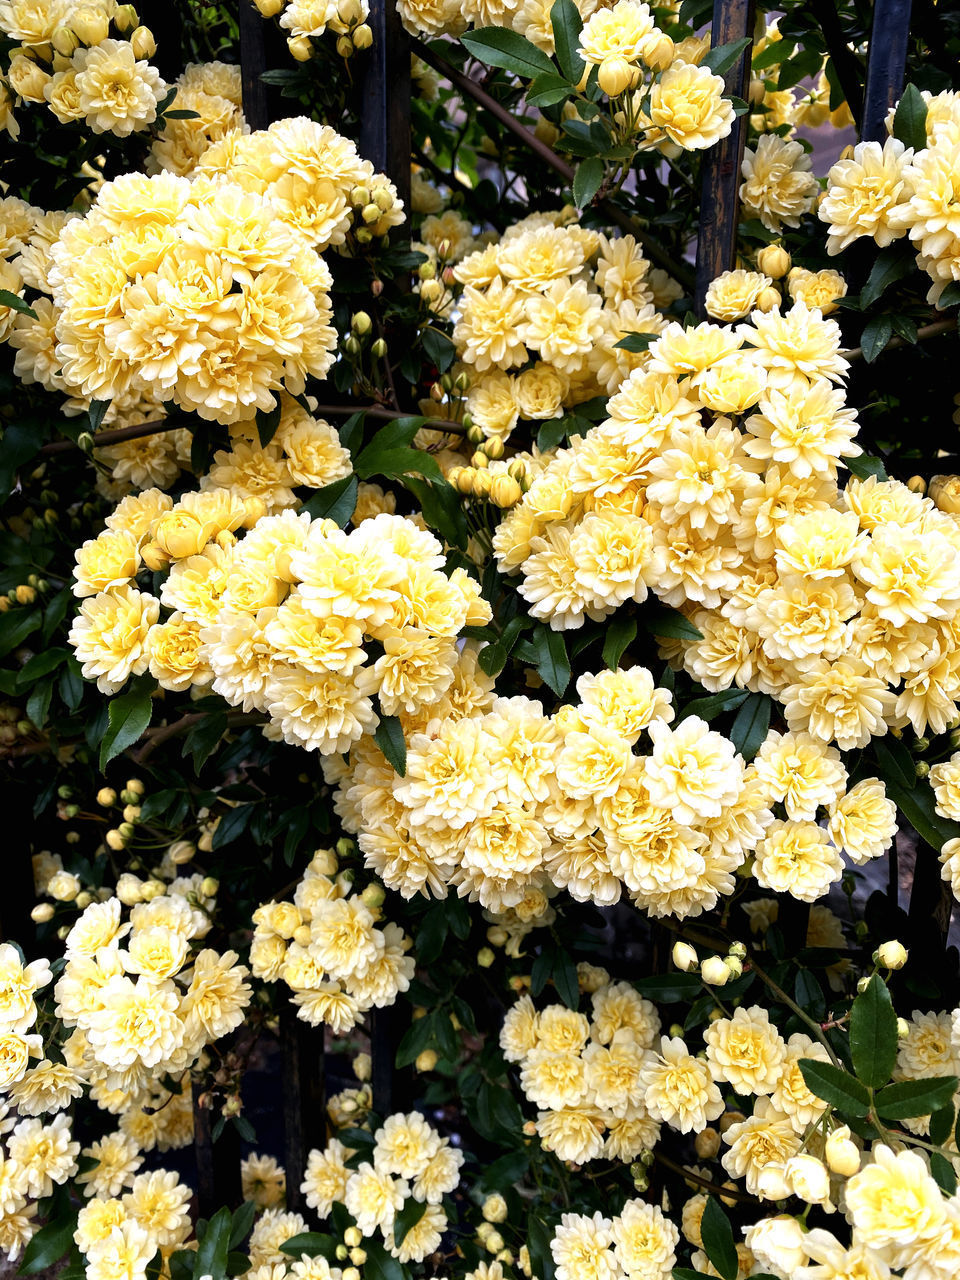 CLOSE-UP OF YELLOW FLOWERING PLANTS IN SHOP